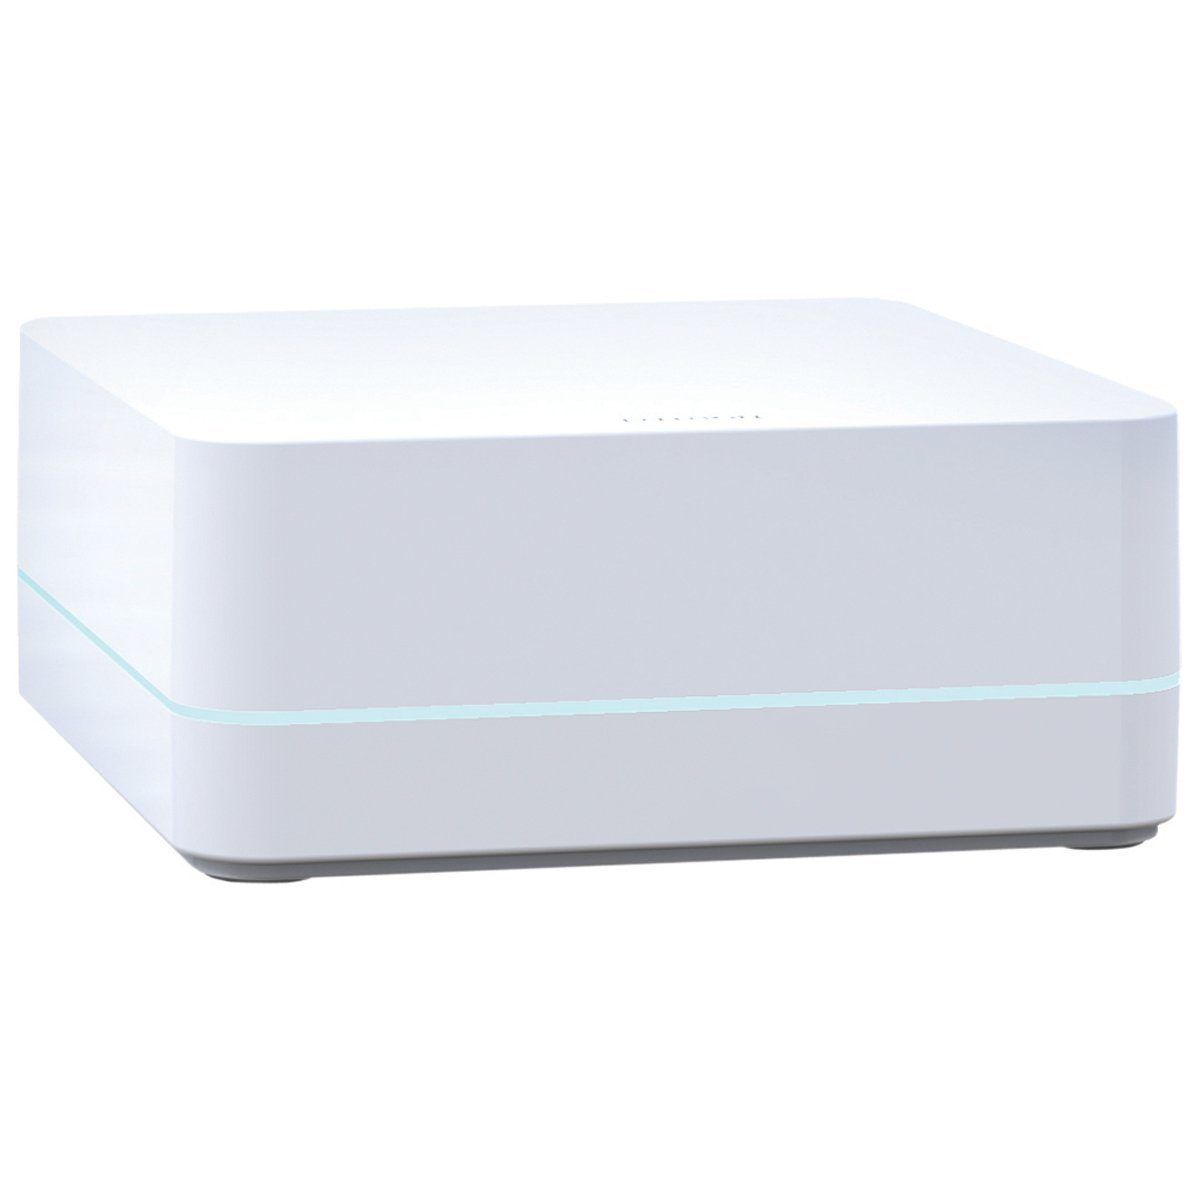 Lutron Caseta Wireless Smart Bridge HomeKit Enabled